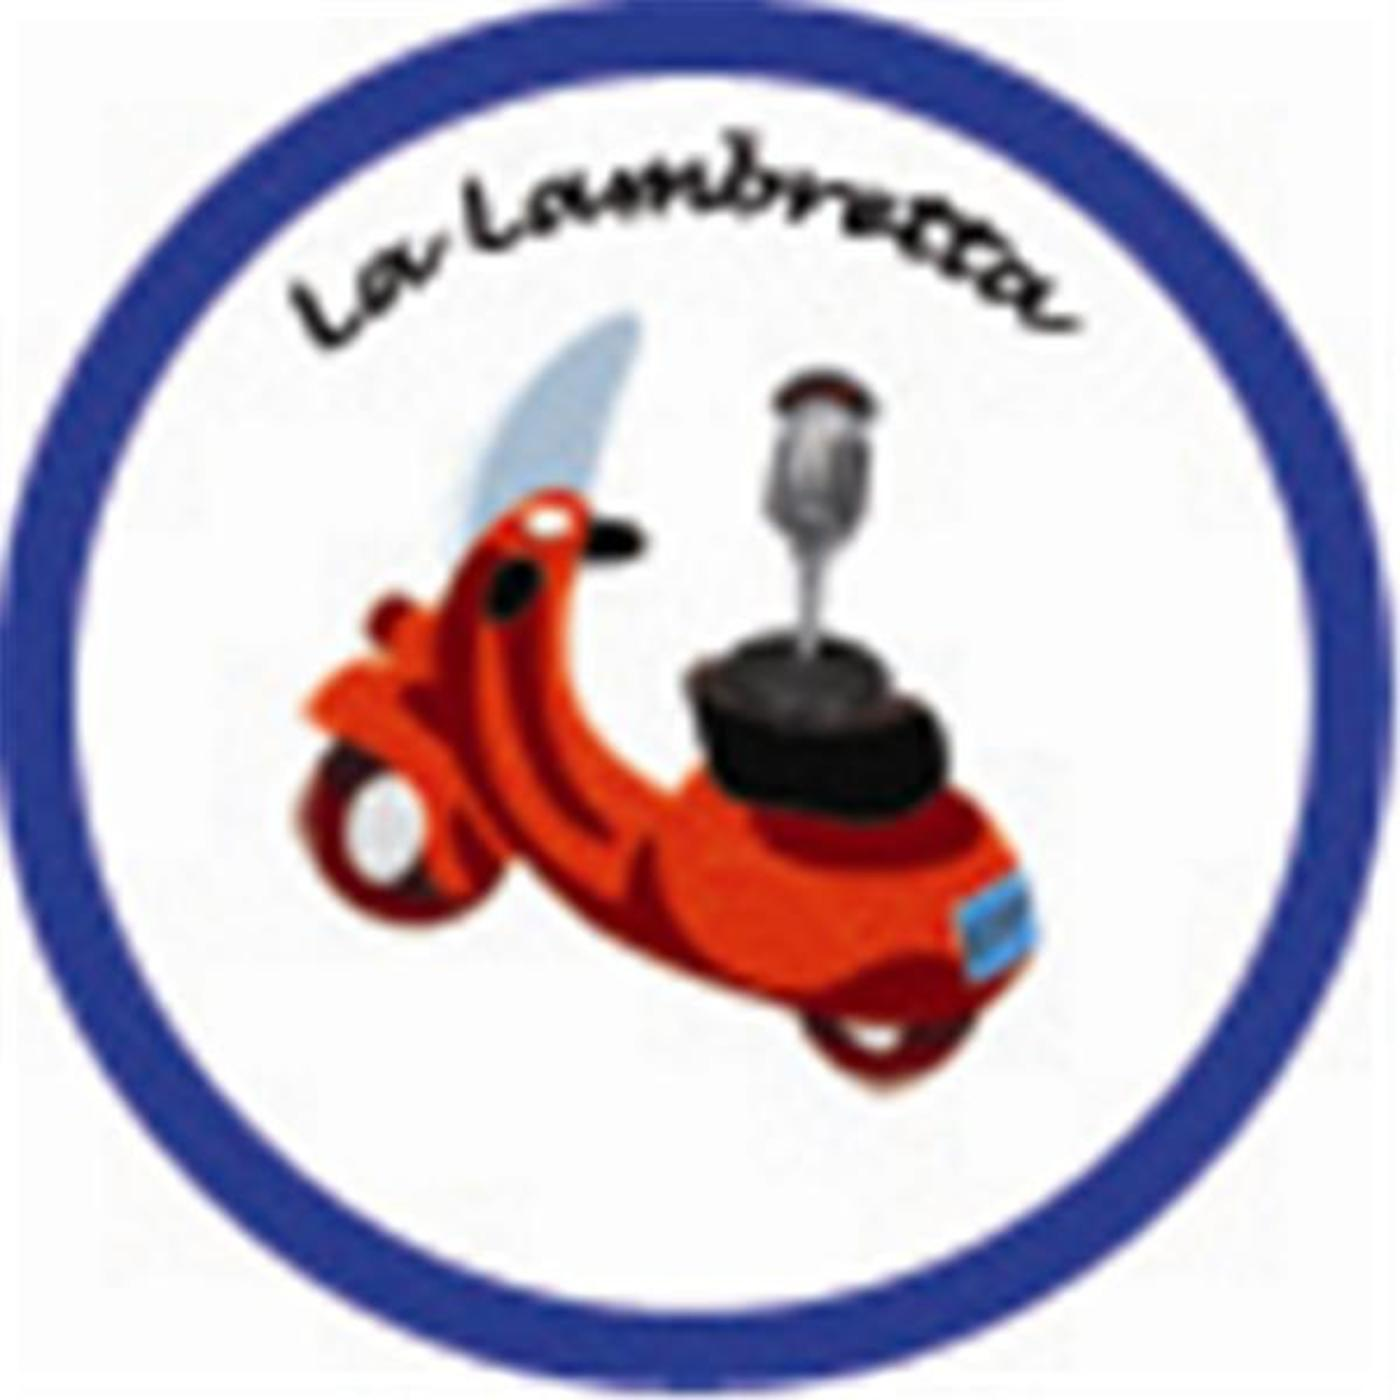 La Lambretta bilingual podcast